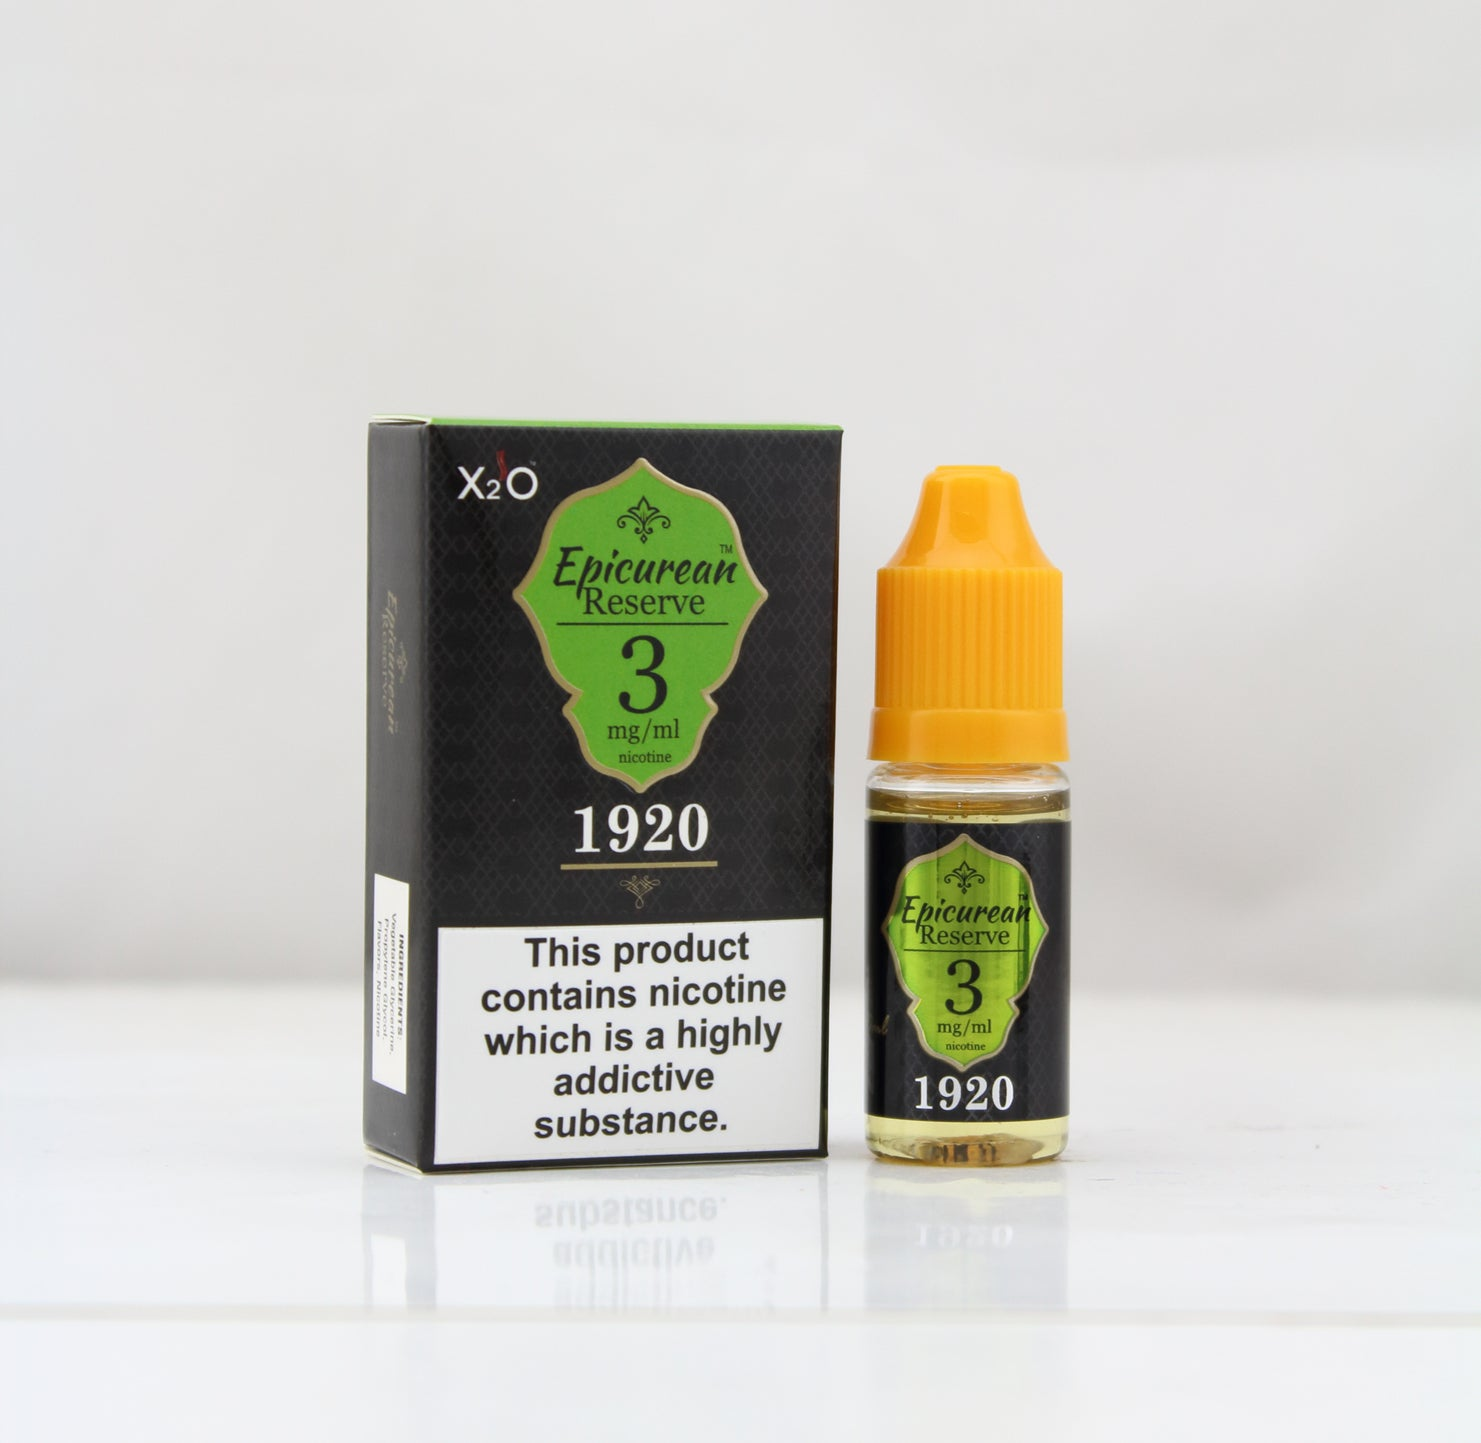 Epicurean 1920 Vape Juice